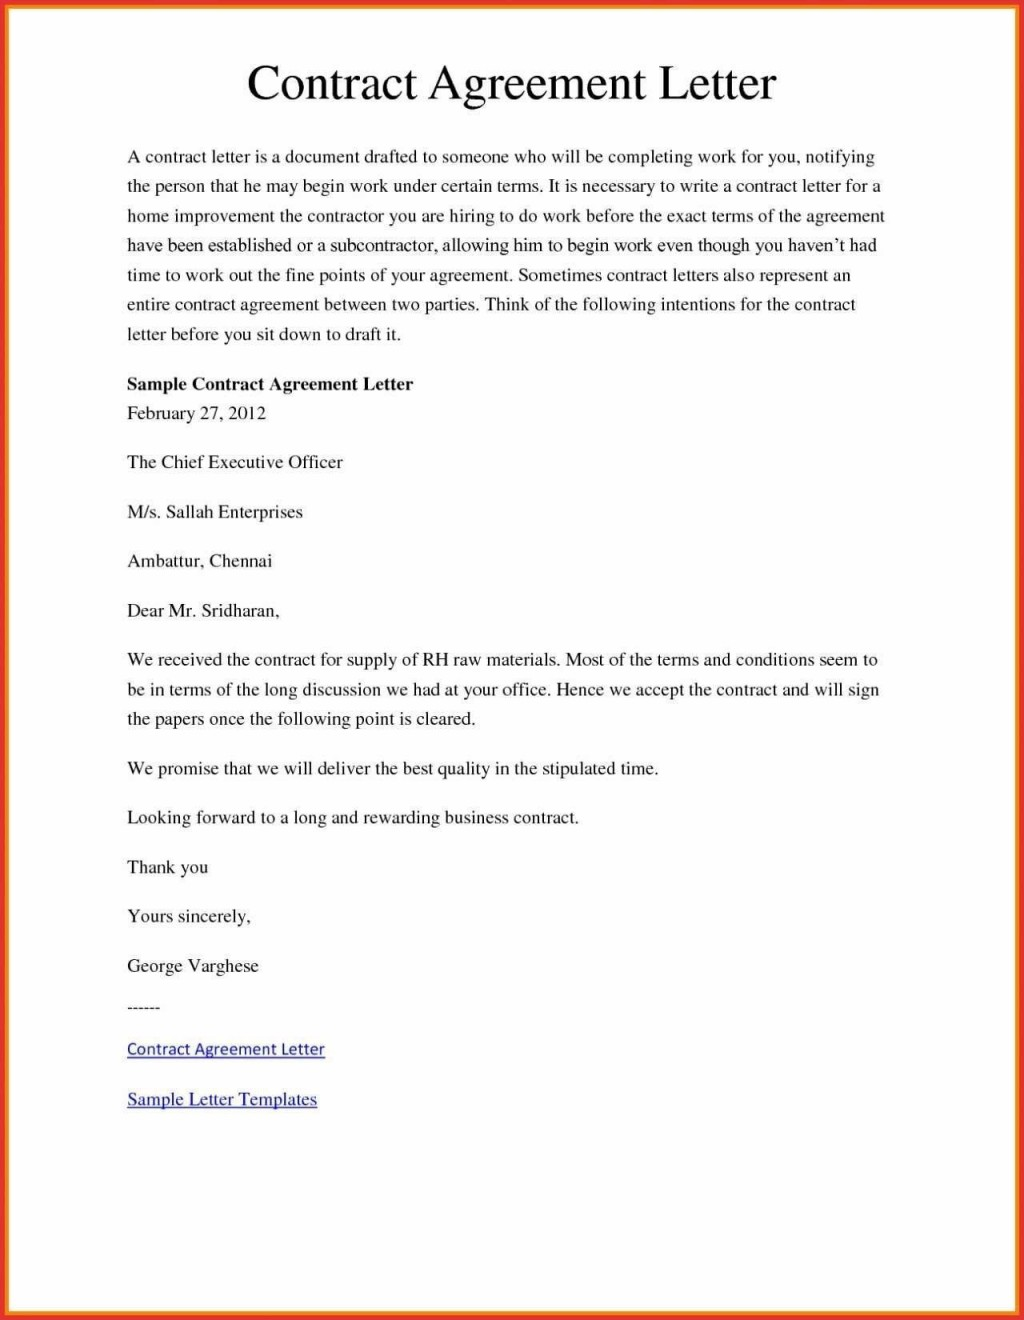 003 Incredible Non Compete Agreement Template South Africa High Resolution Large